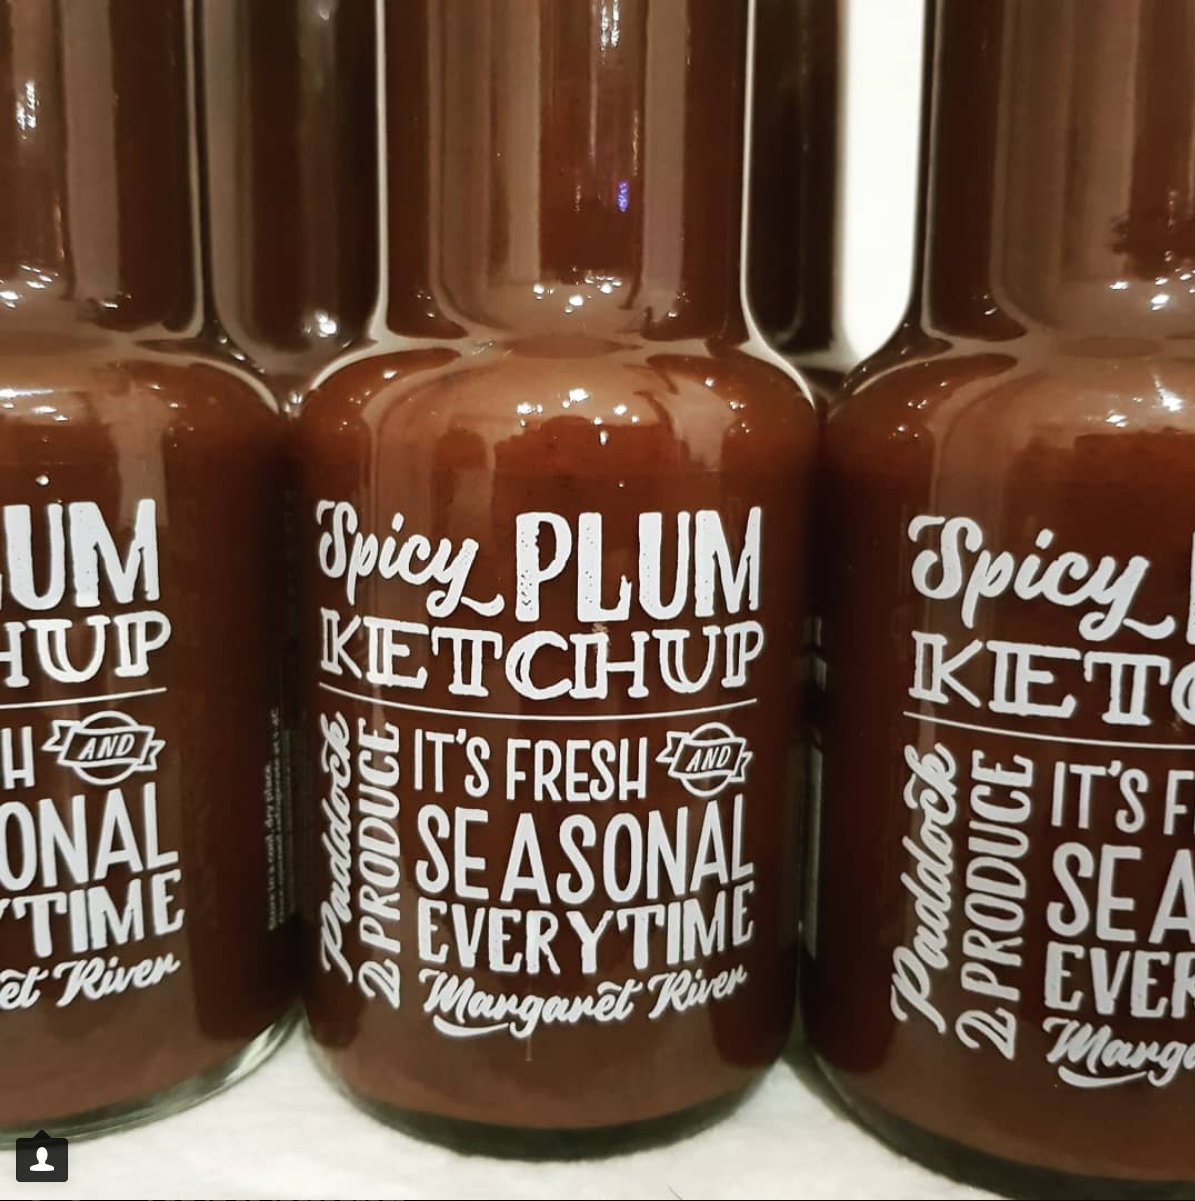 Paddock 2 Produce  Spicy Plum Ketchup